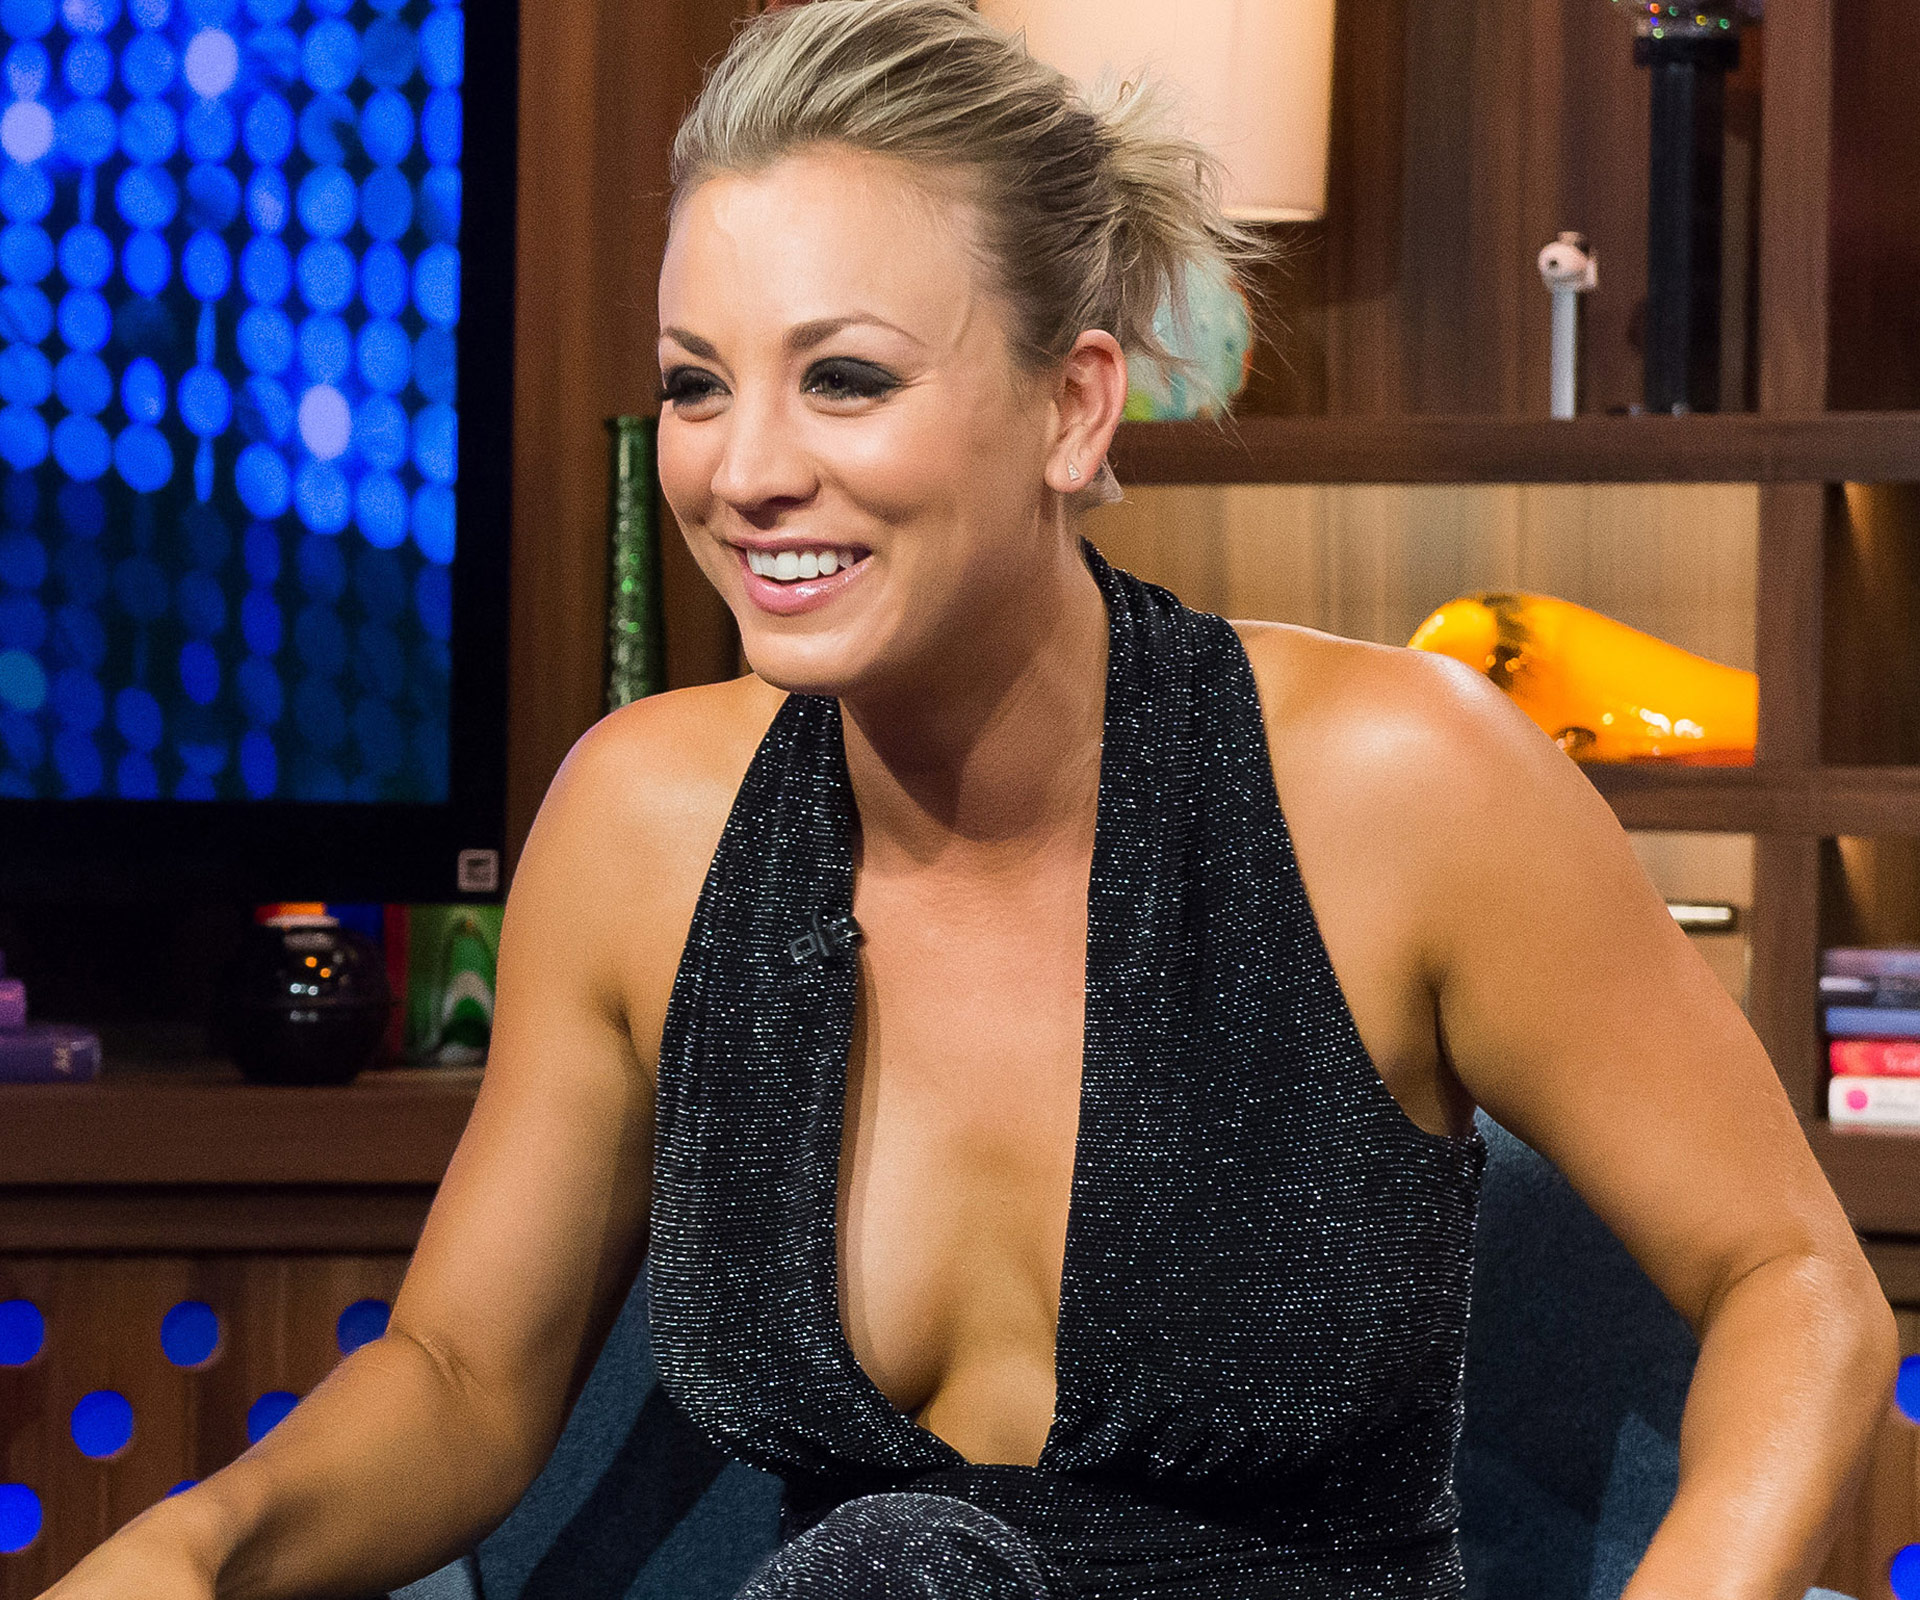 Kaley Cuoco Bares Her Breast In Goofy Snapchat Photo